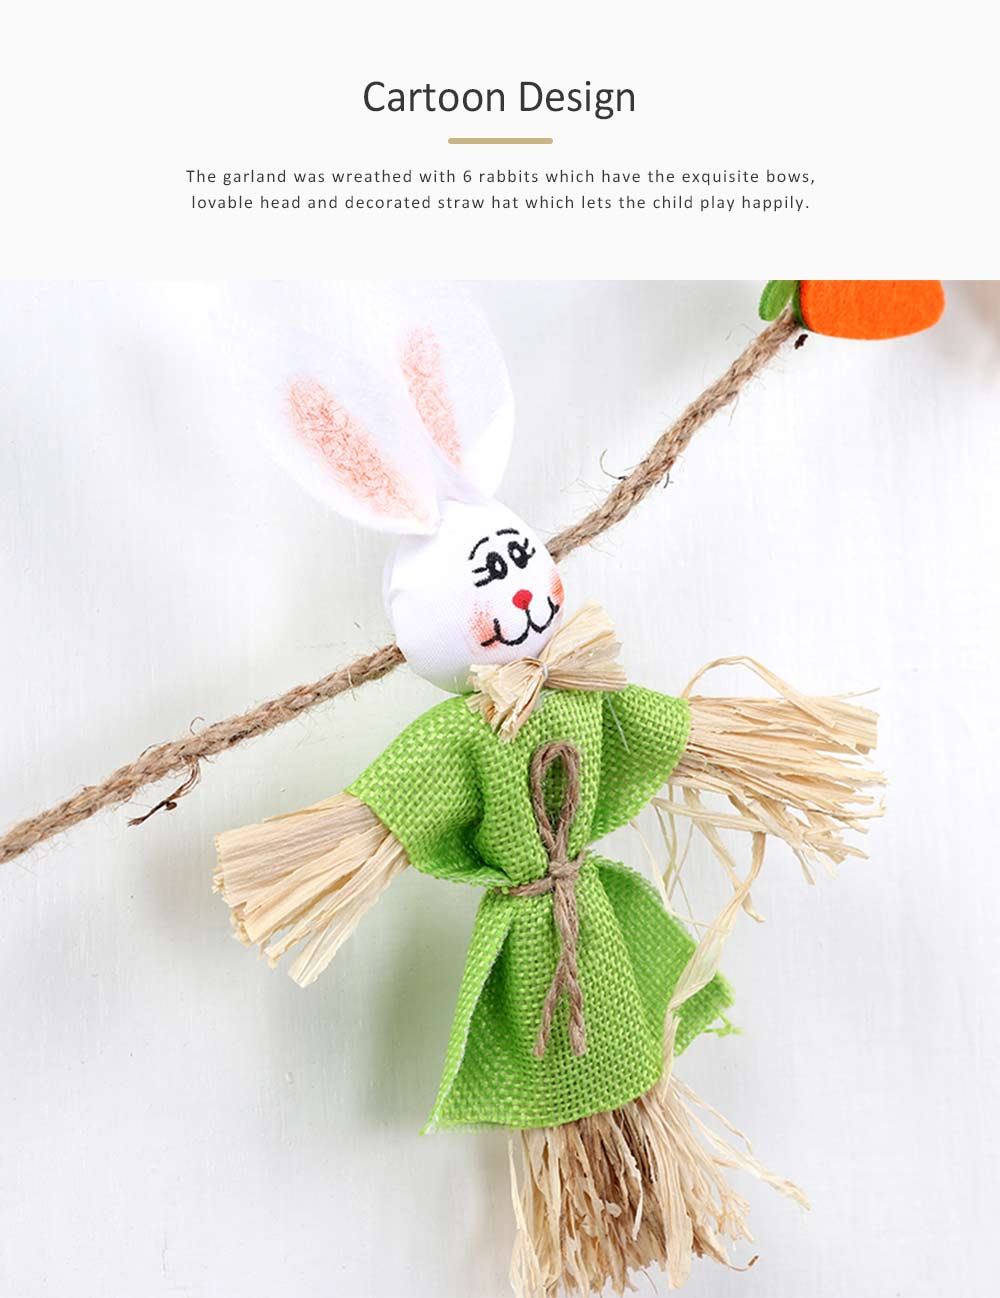 Easter Scarecrow Wreath with 6 Rabbits Design for Kindergarten Children, Creative DIY Handmade Wreath 4